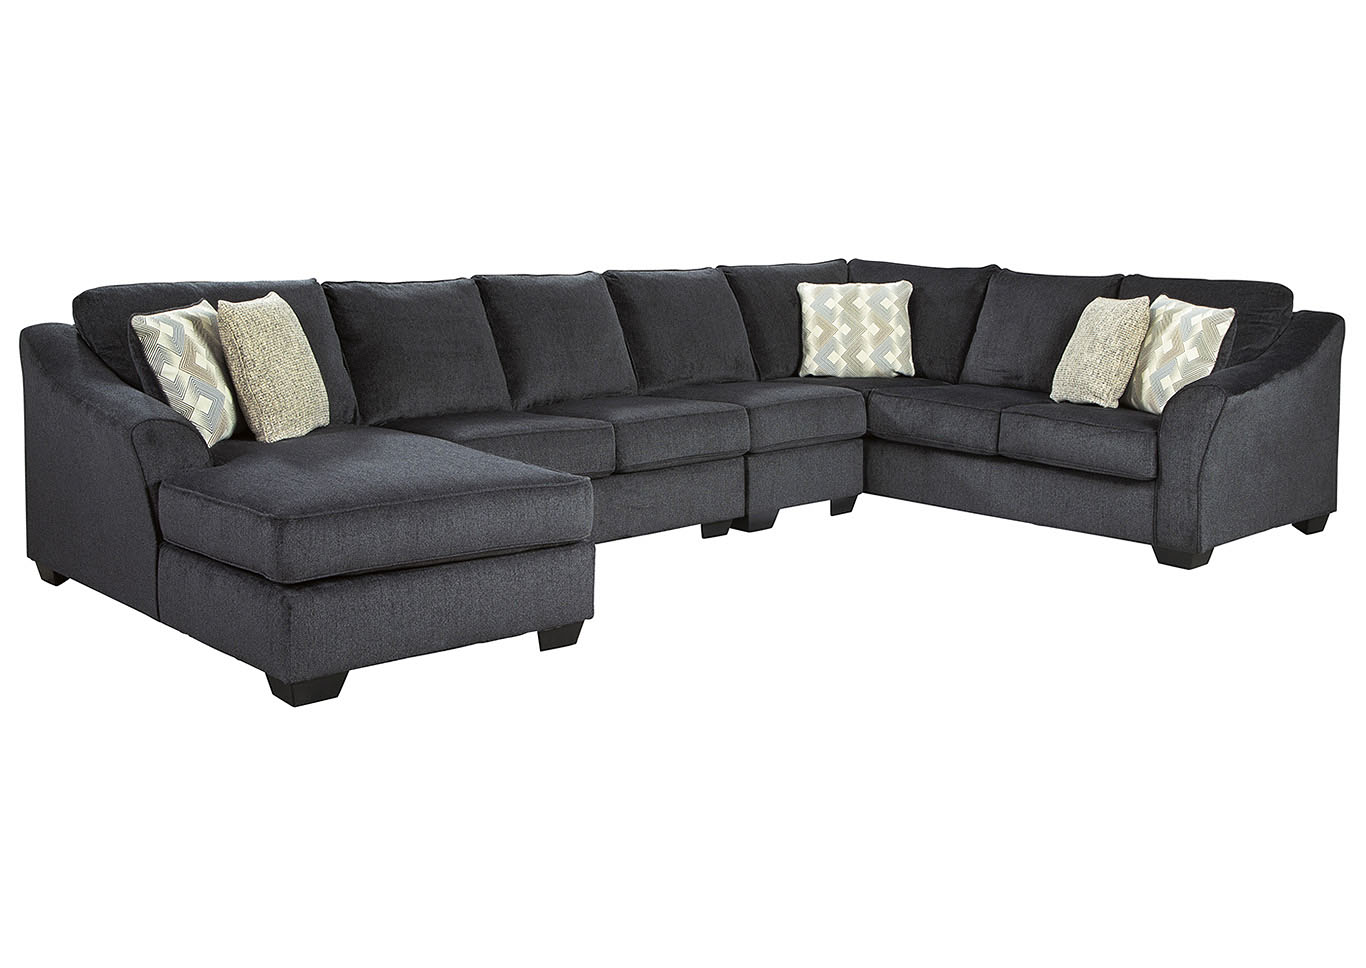 Eltmann Slate LAF Chaise Extended Sectional,Signature Design By Ashley